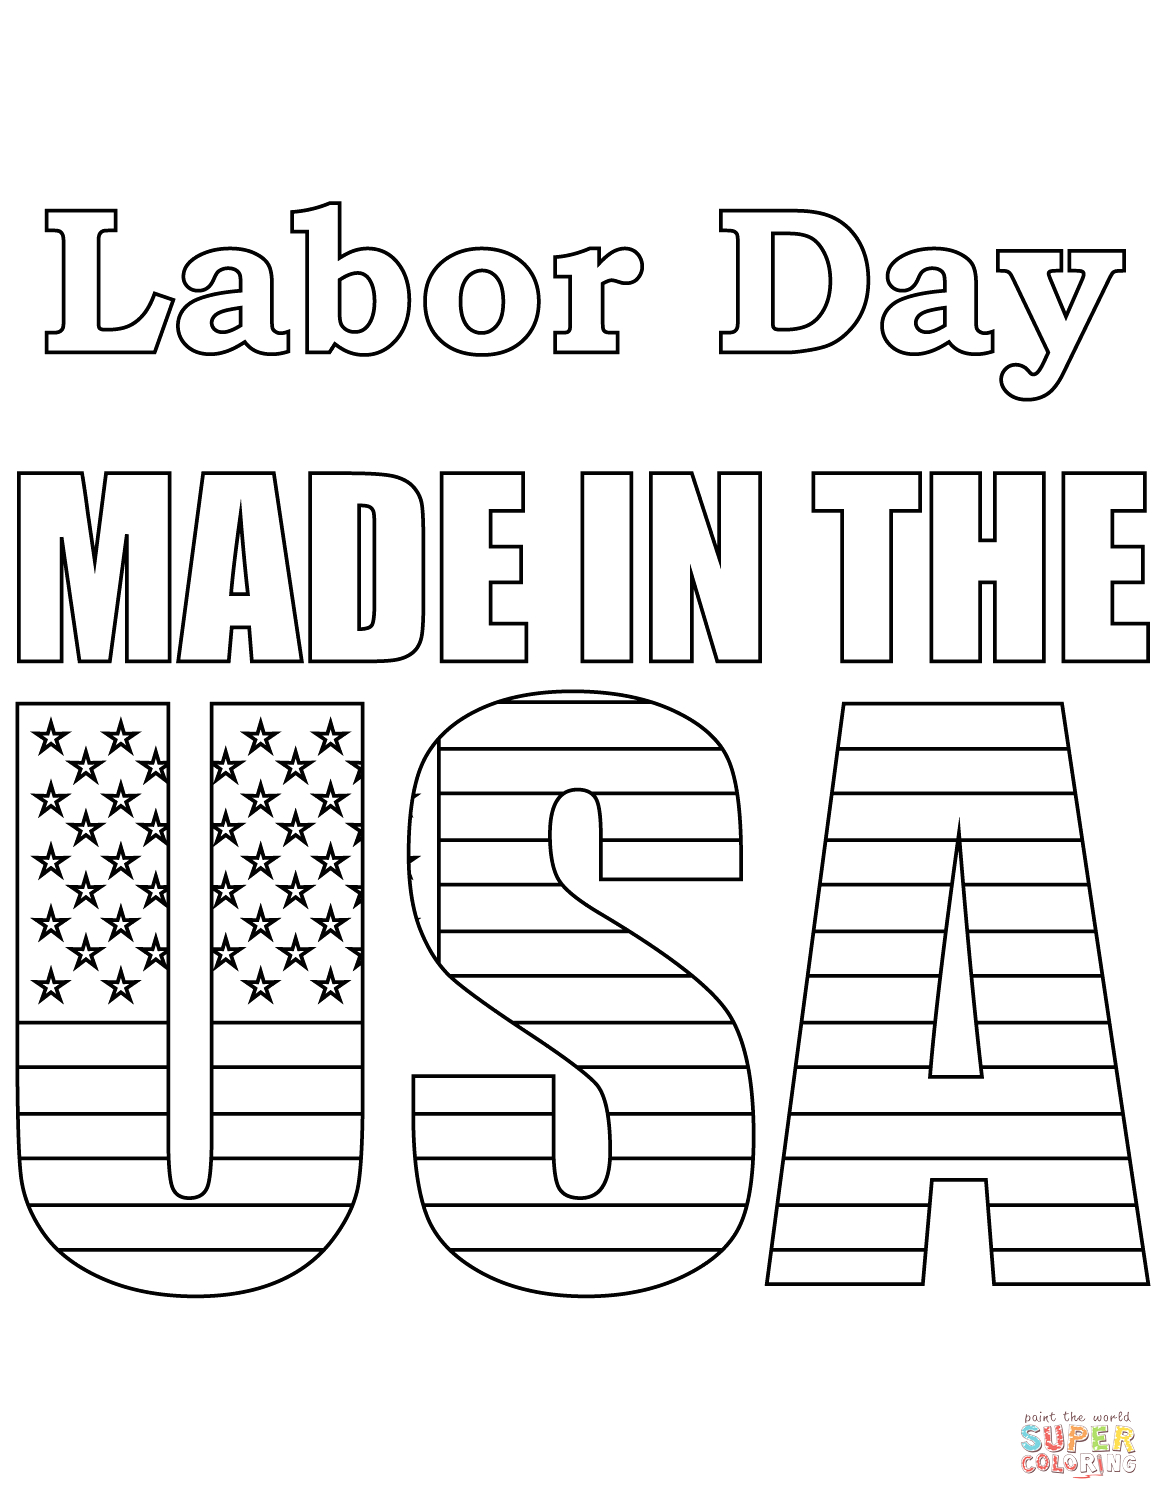 labor day made in the usa